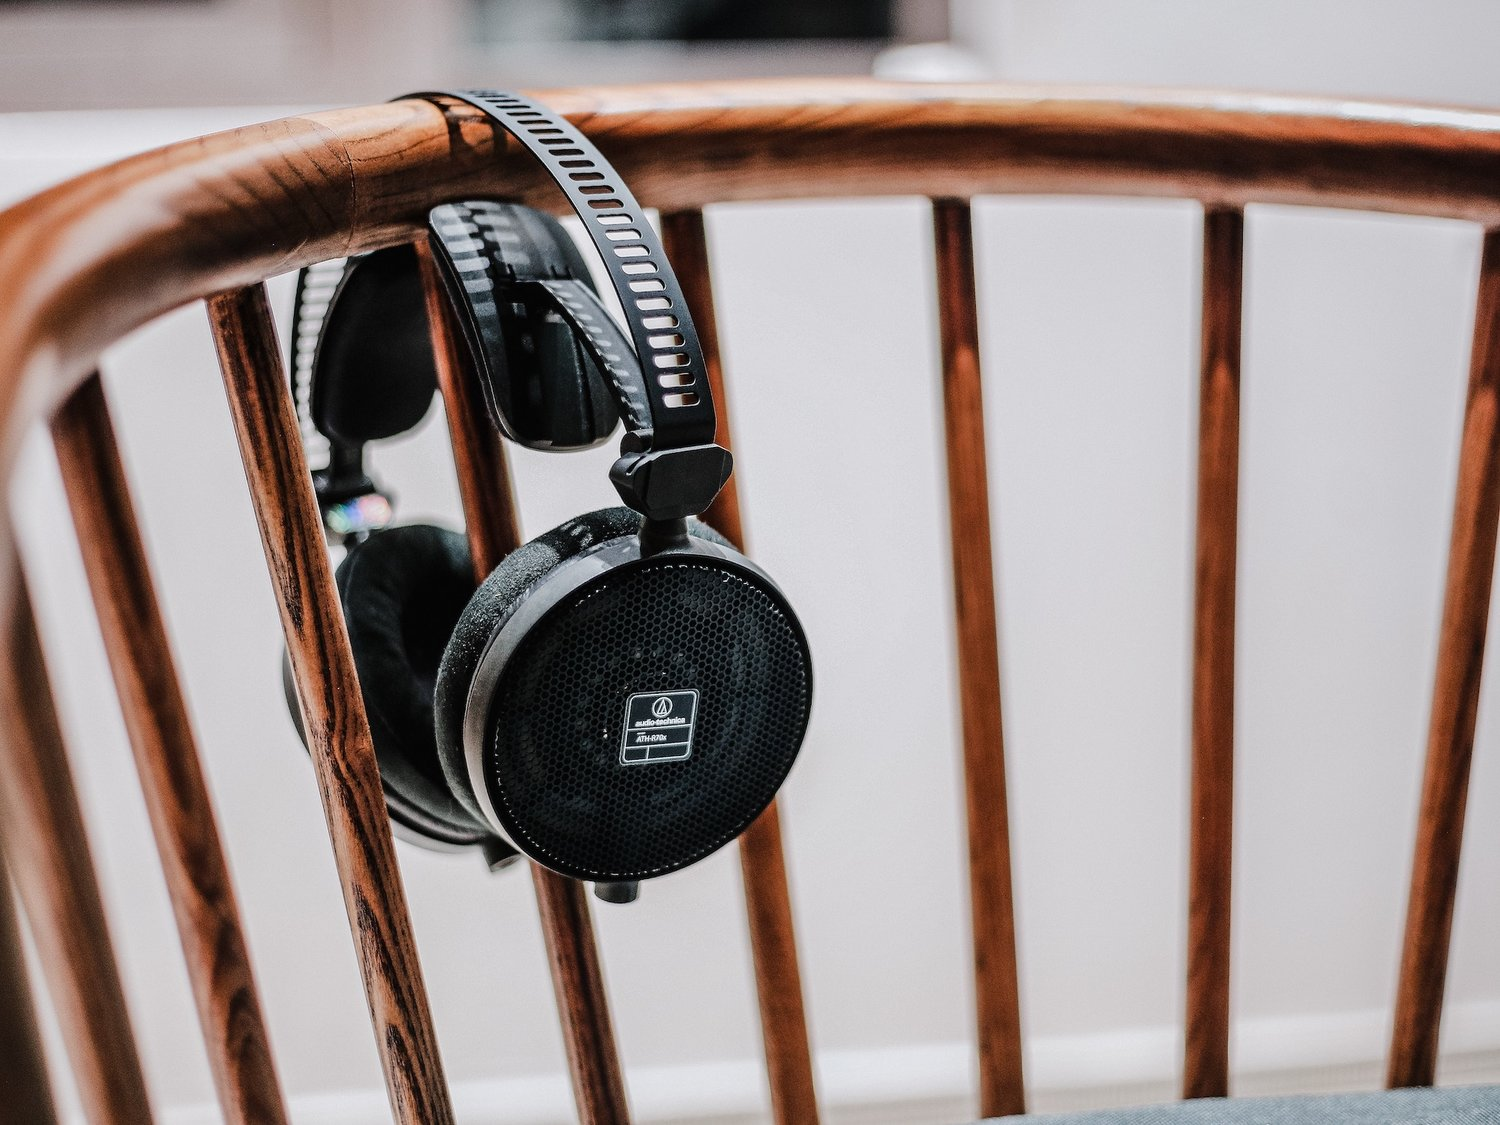 What's the difference between MP3 and Lossless (FLAC / WAV